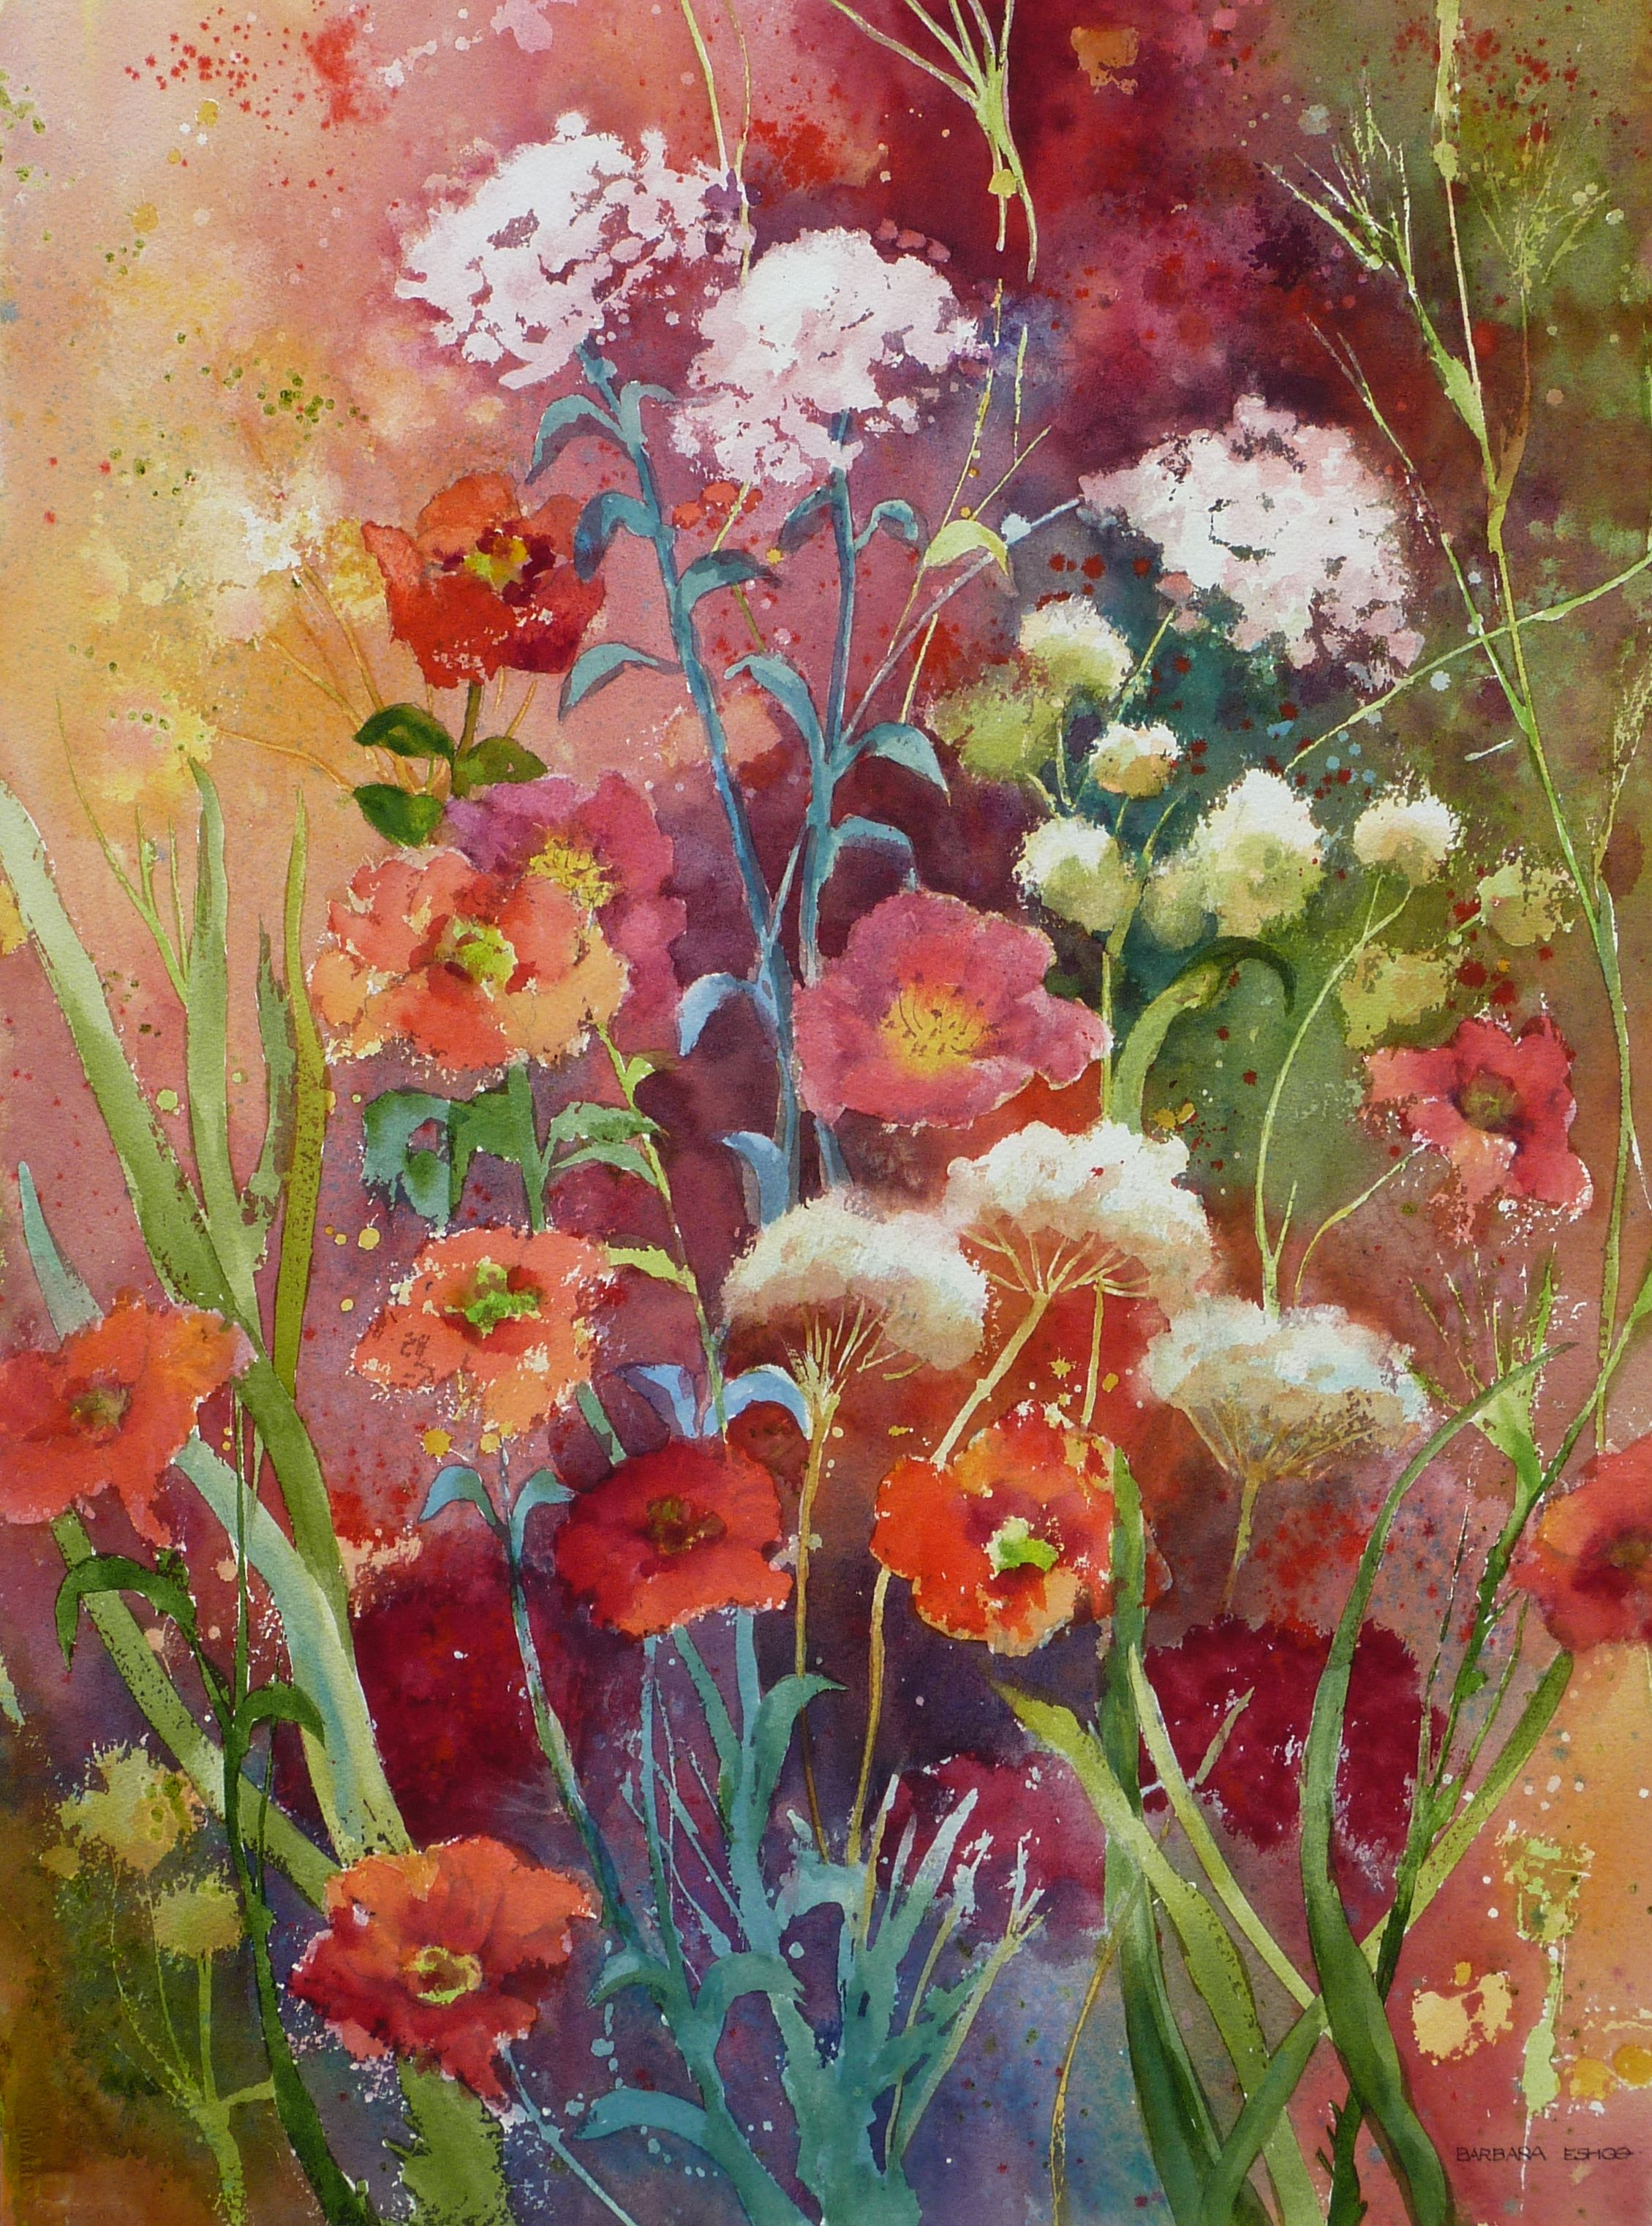 2259x3044 Wayside Trails And Gardens Watercolor Paintings By Barbara Eshoo